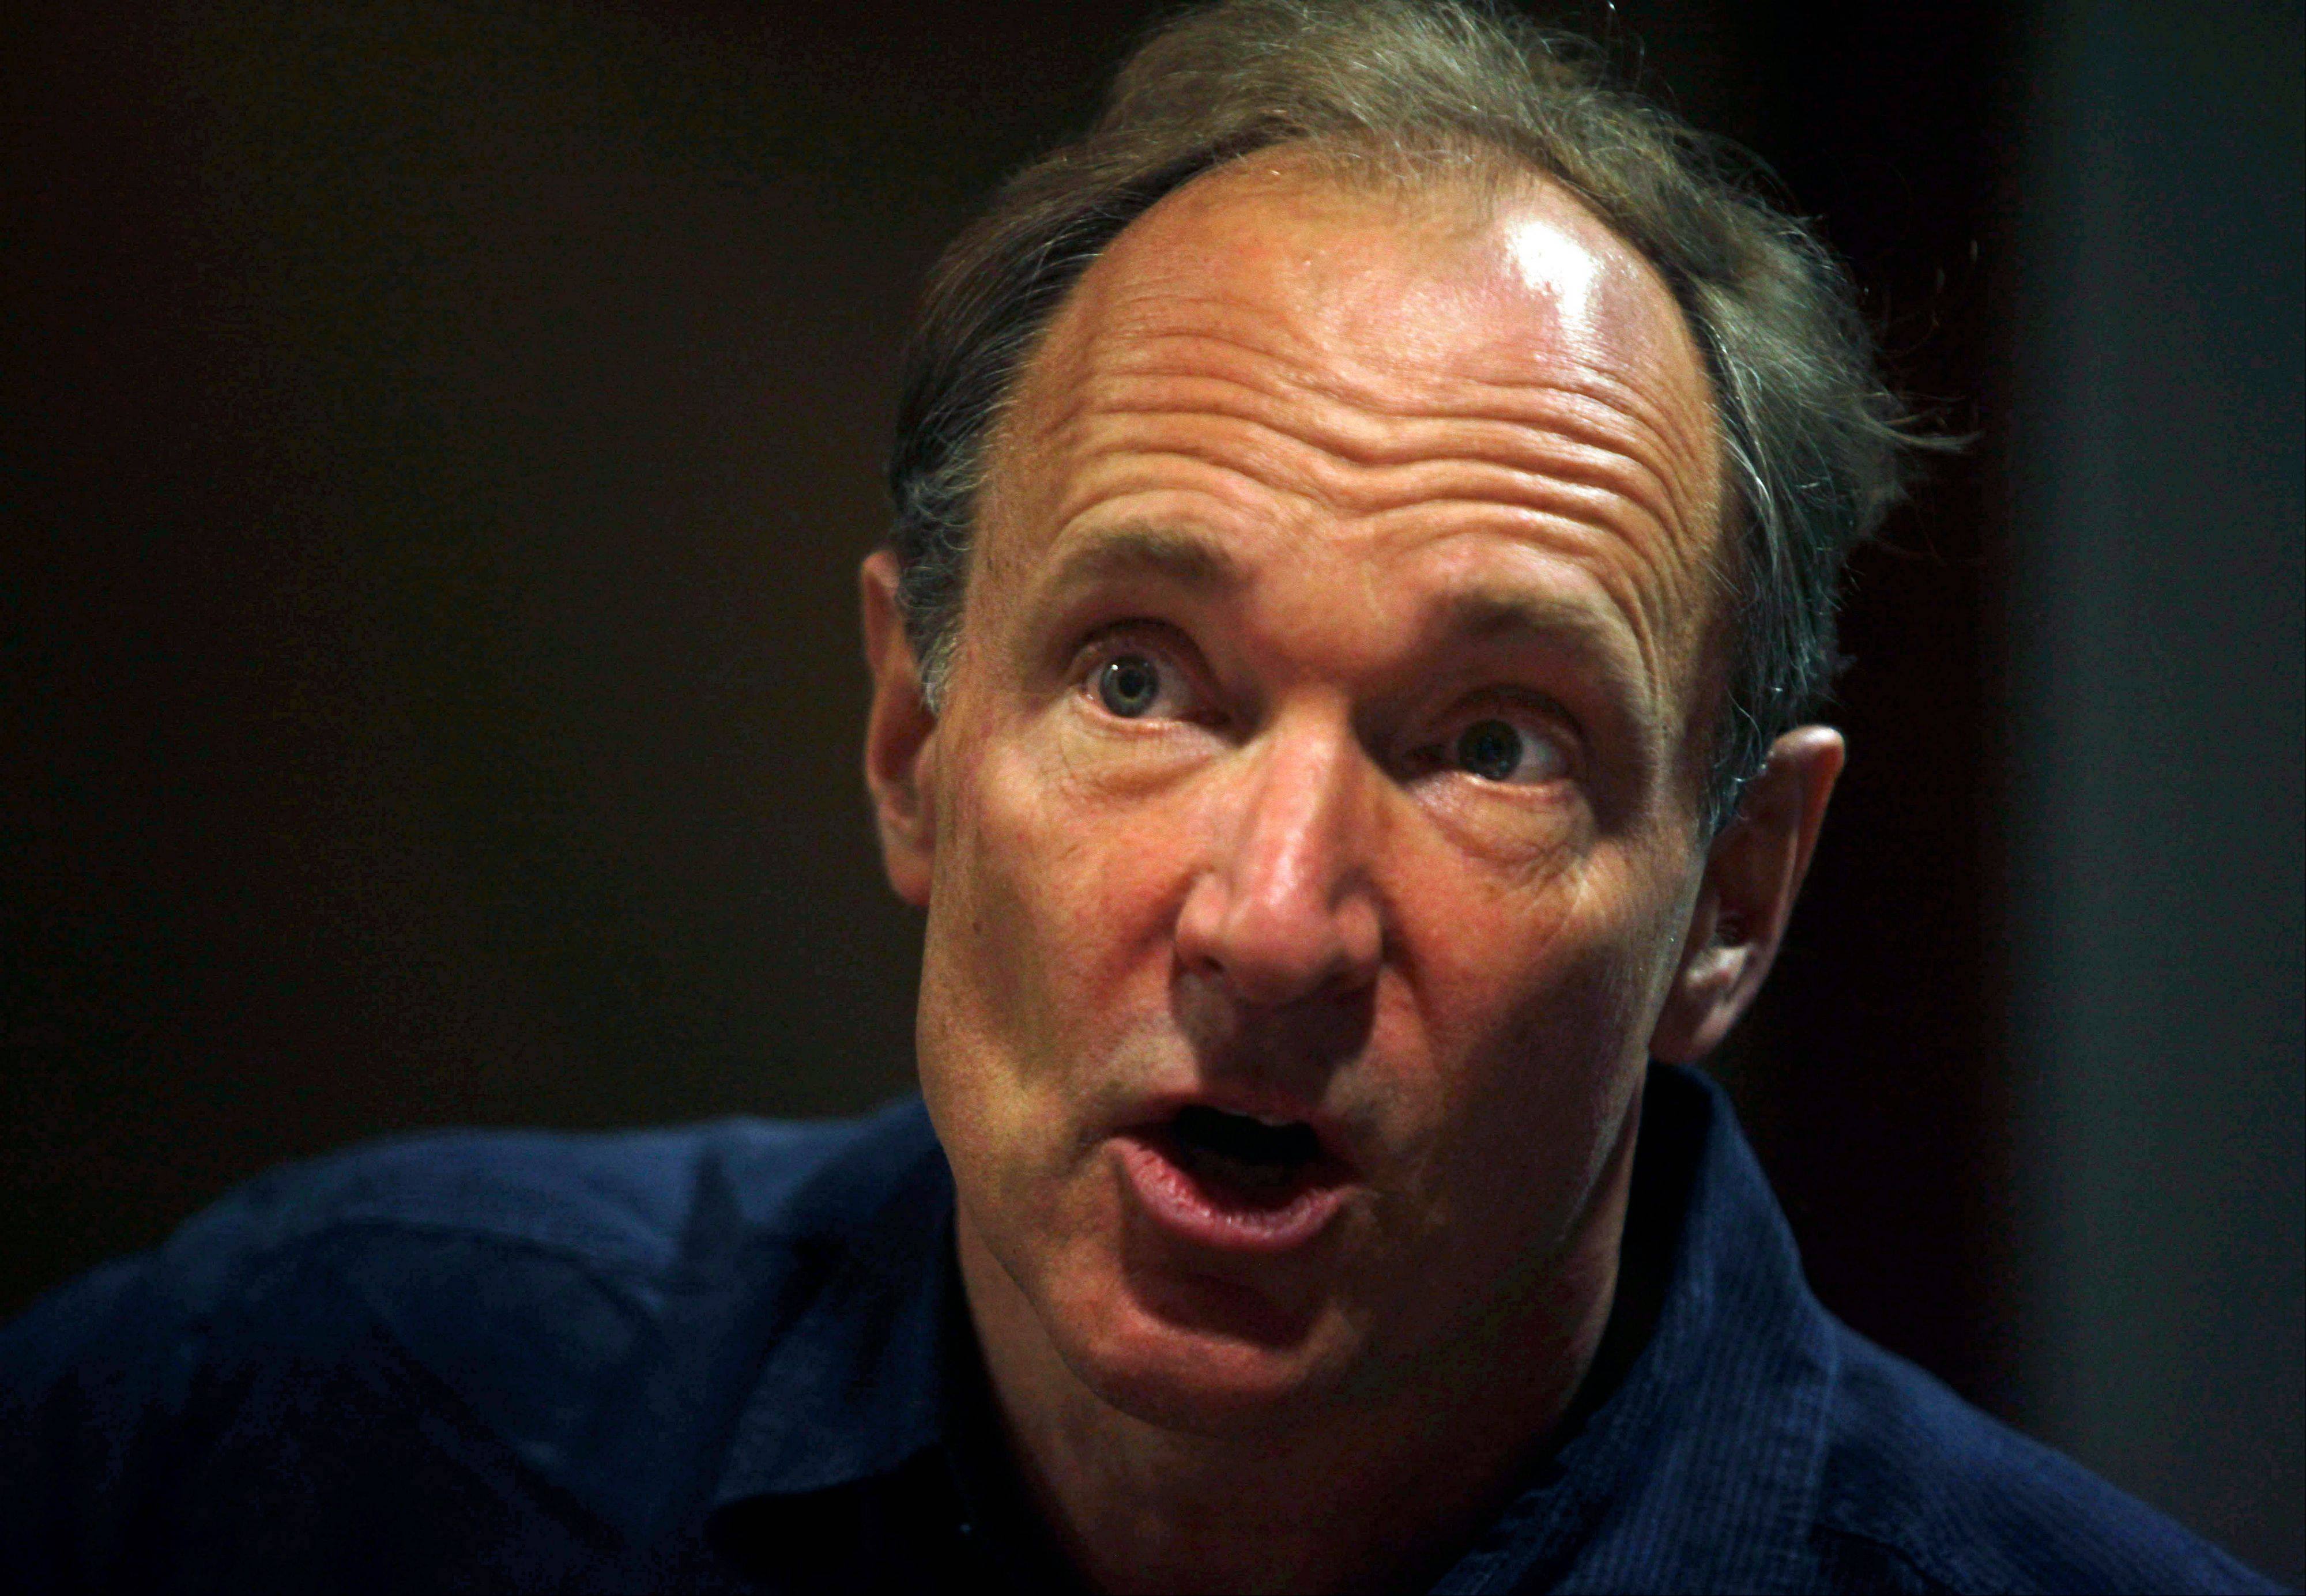 In this Thursday, March 31, 2011 file photo, World Wide Web inventor Tim Berners-Lee addresses the media during the International World Wide Web conference in Hyderabad, India.